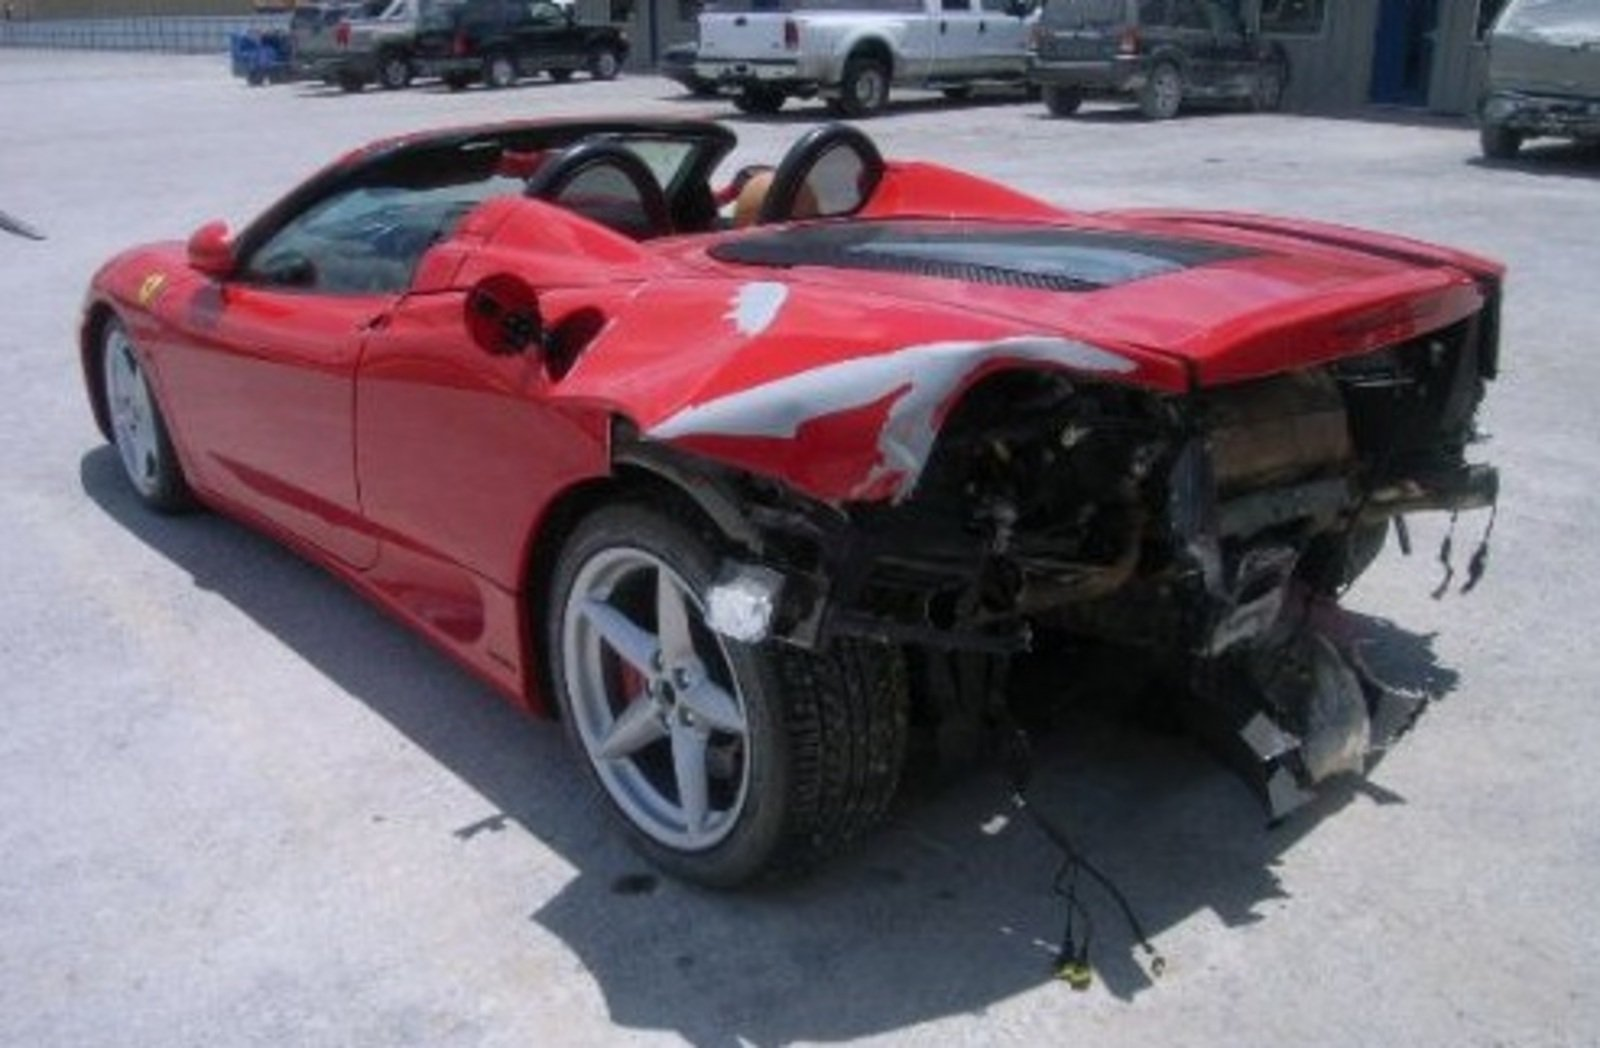 Ferrari 360 Spider Gets Rear Ended By Reckless Driver